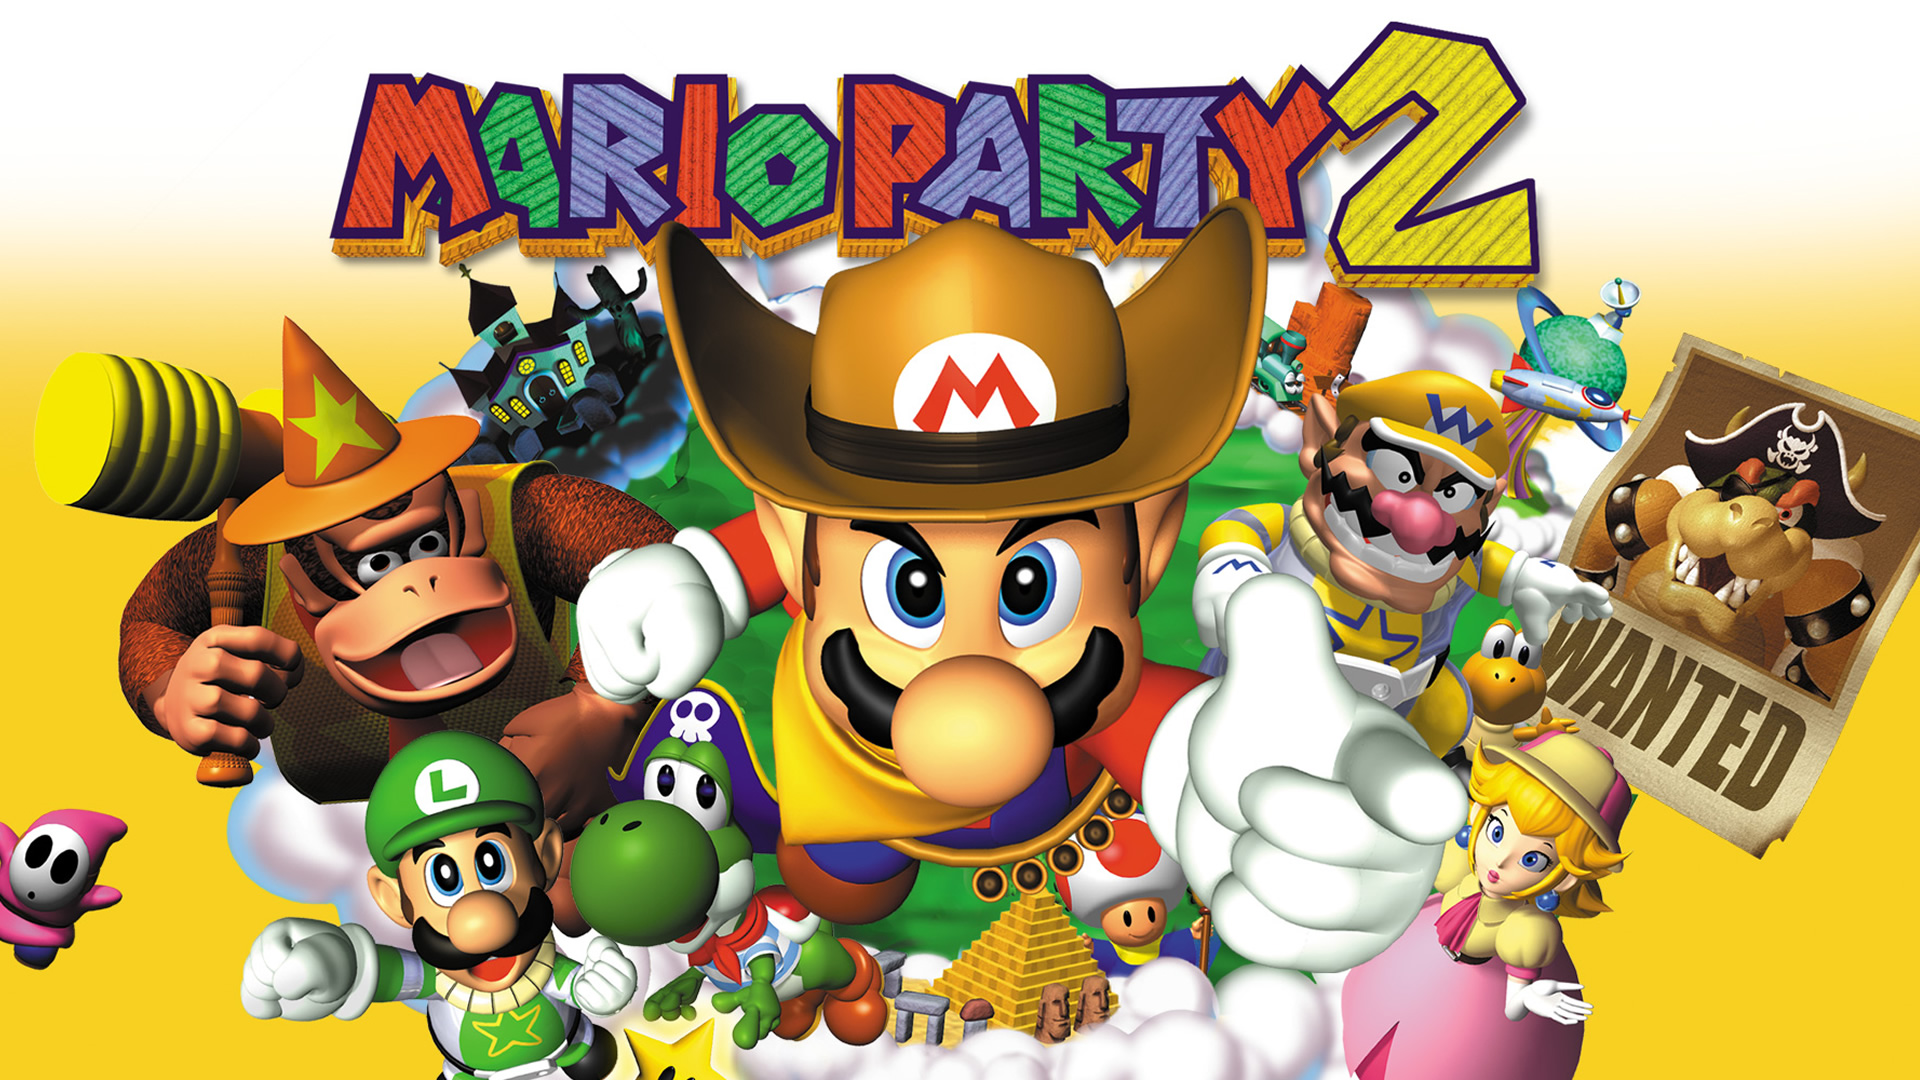 Why Mario Party 2 Was So Iconic